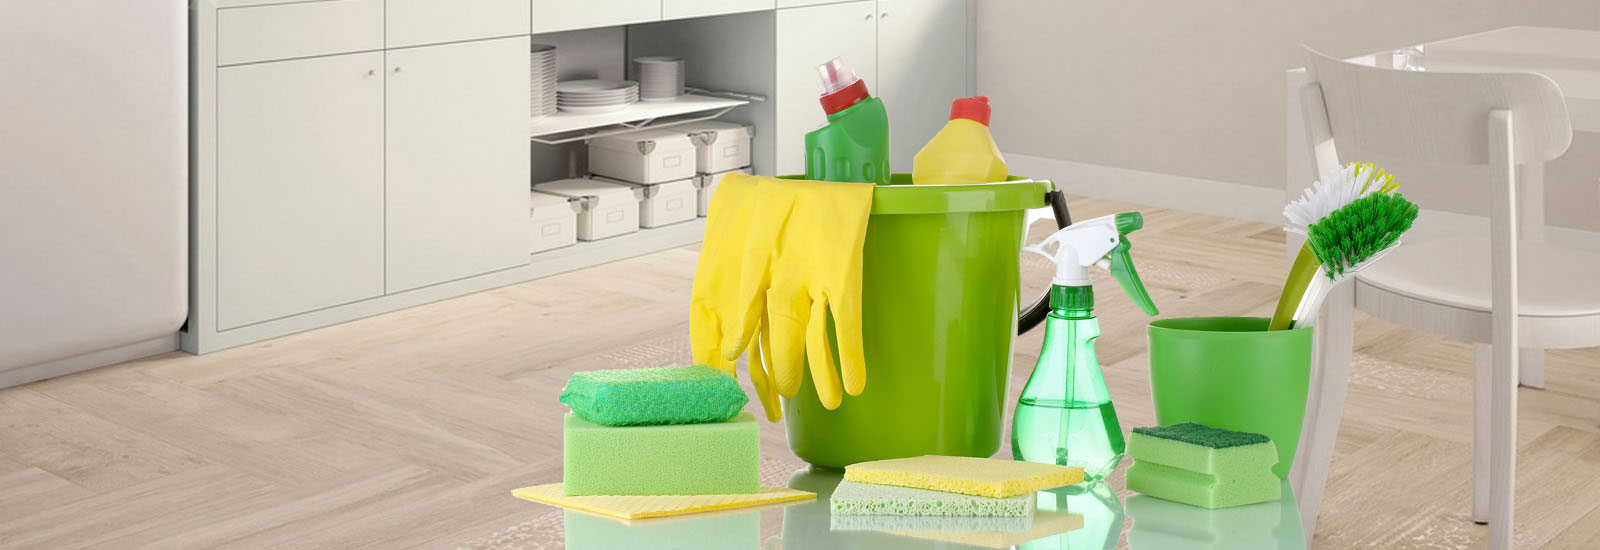 Ybh Cleaning Services second image